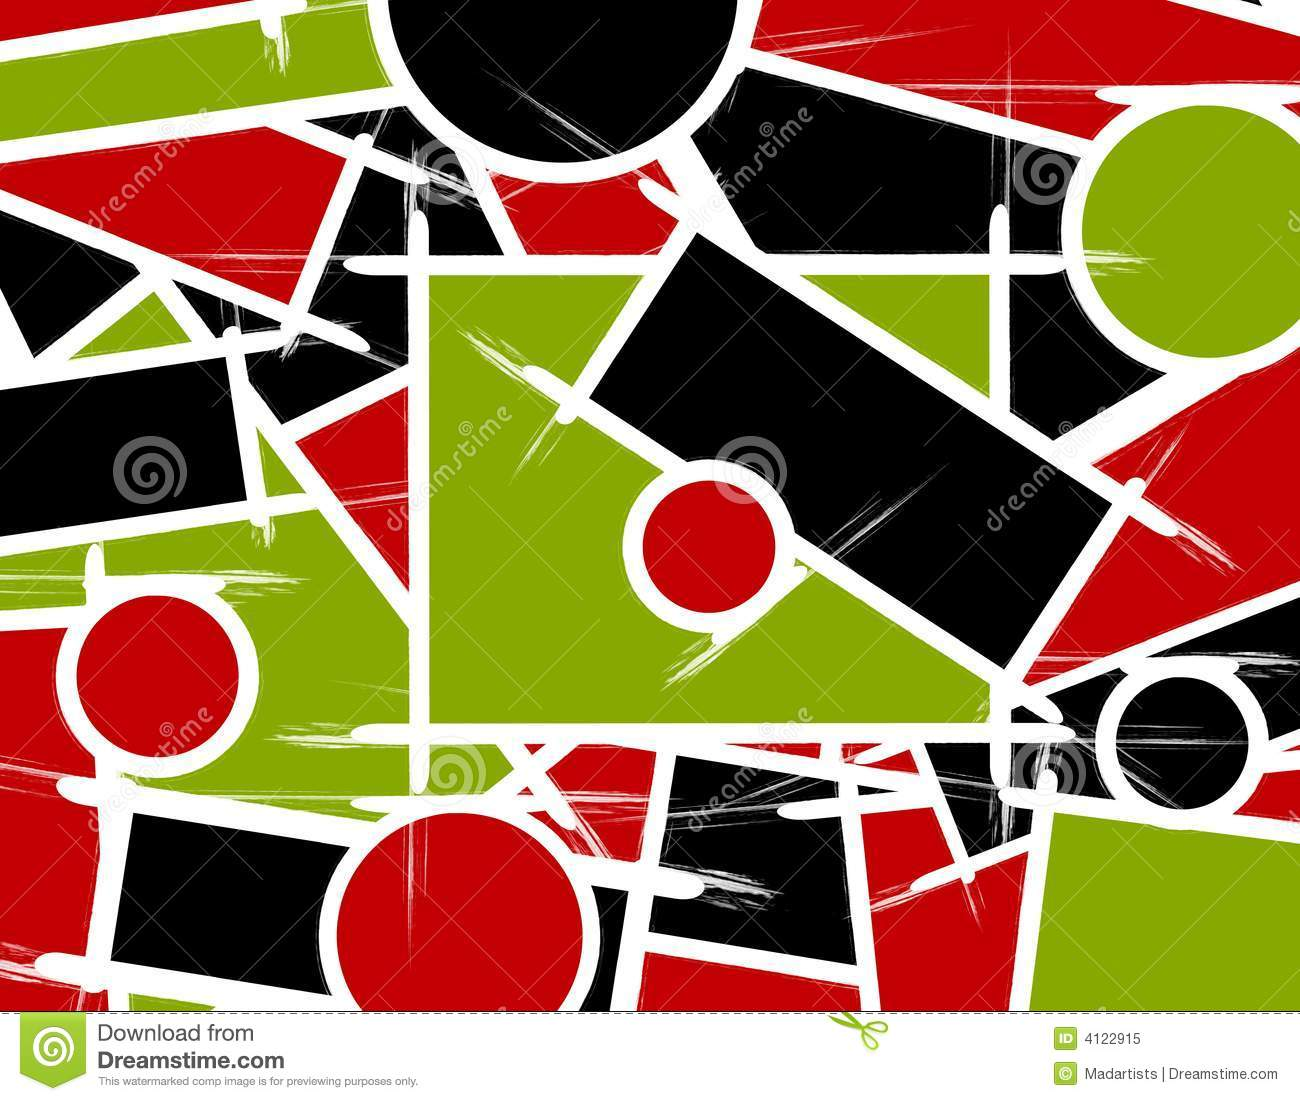 Lines And Shapes : Abstract shapes lines background royalty free stock photo